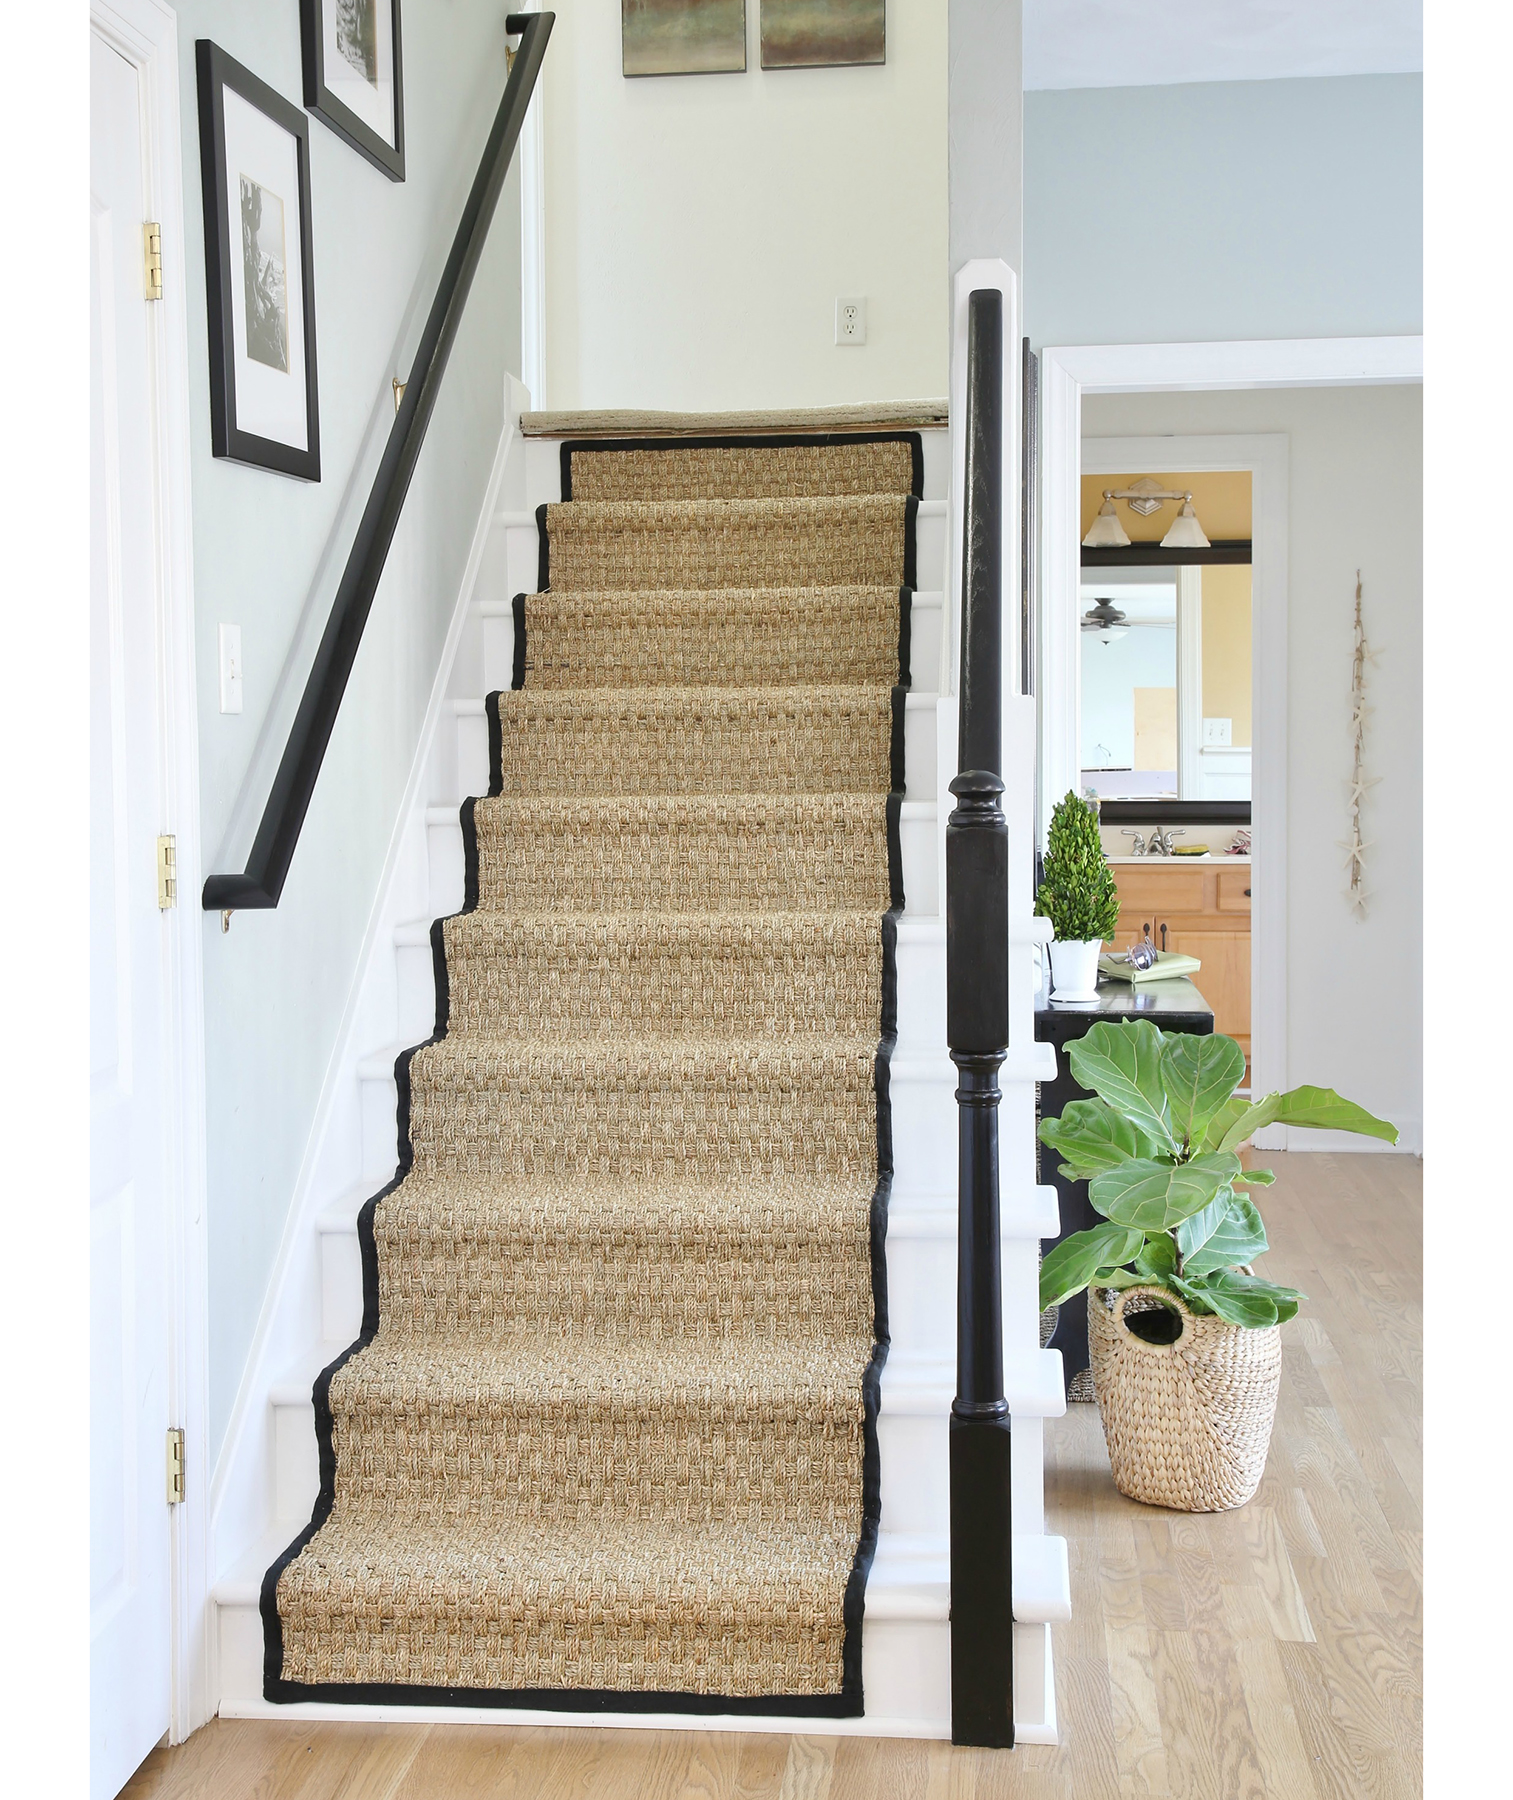 White staircase with seagrass runner